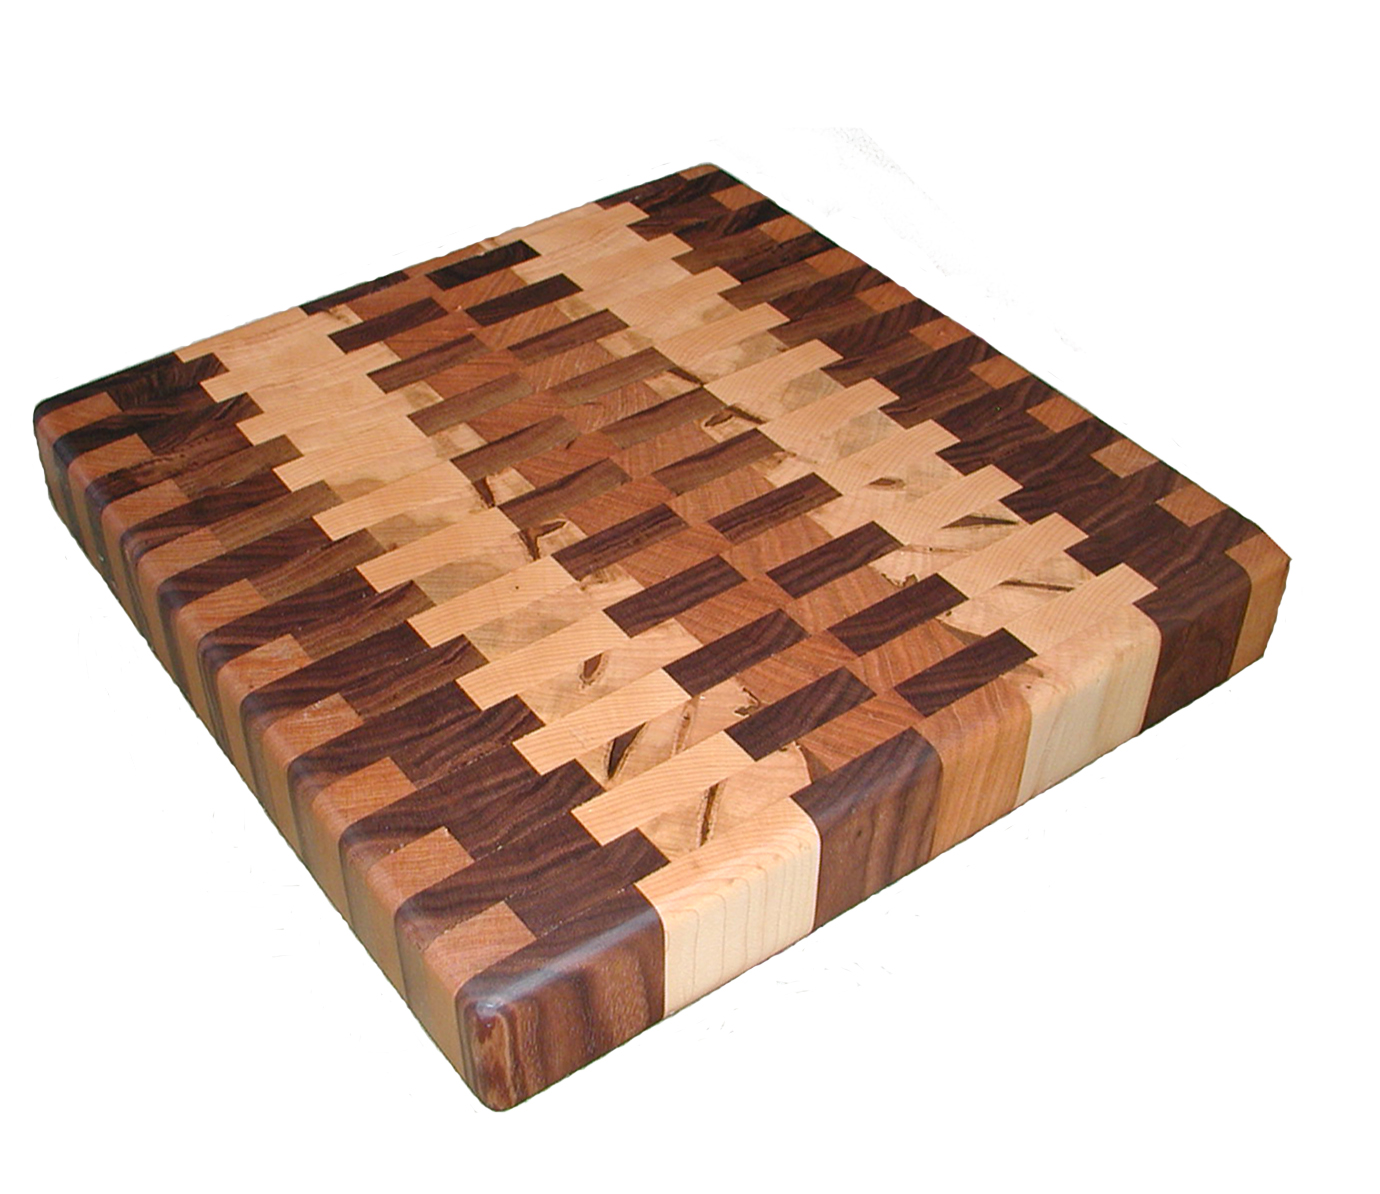 creativity: ideas high school woodworking projects